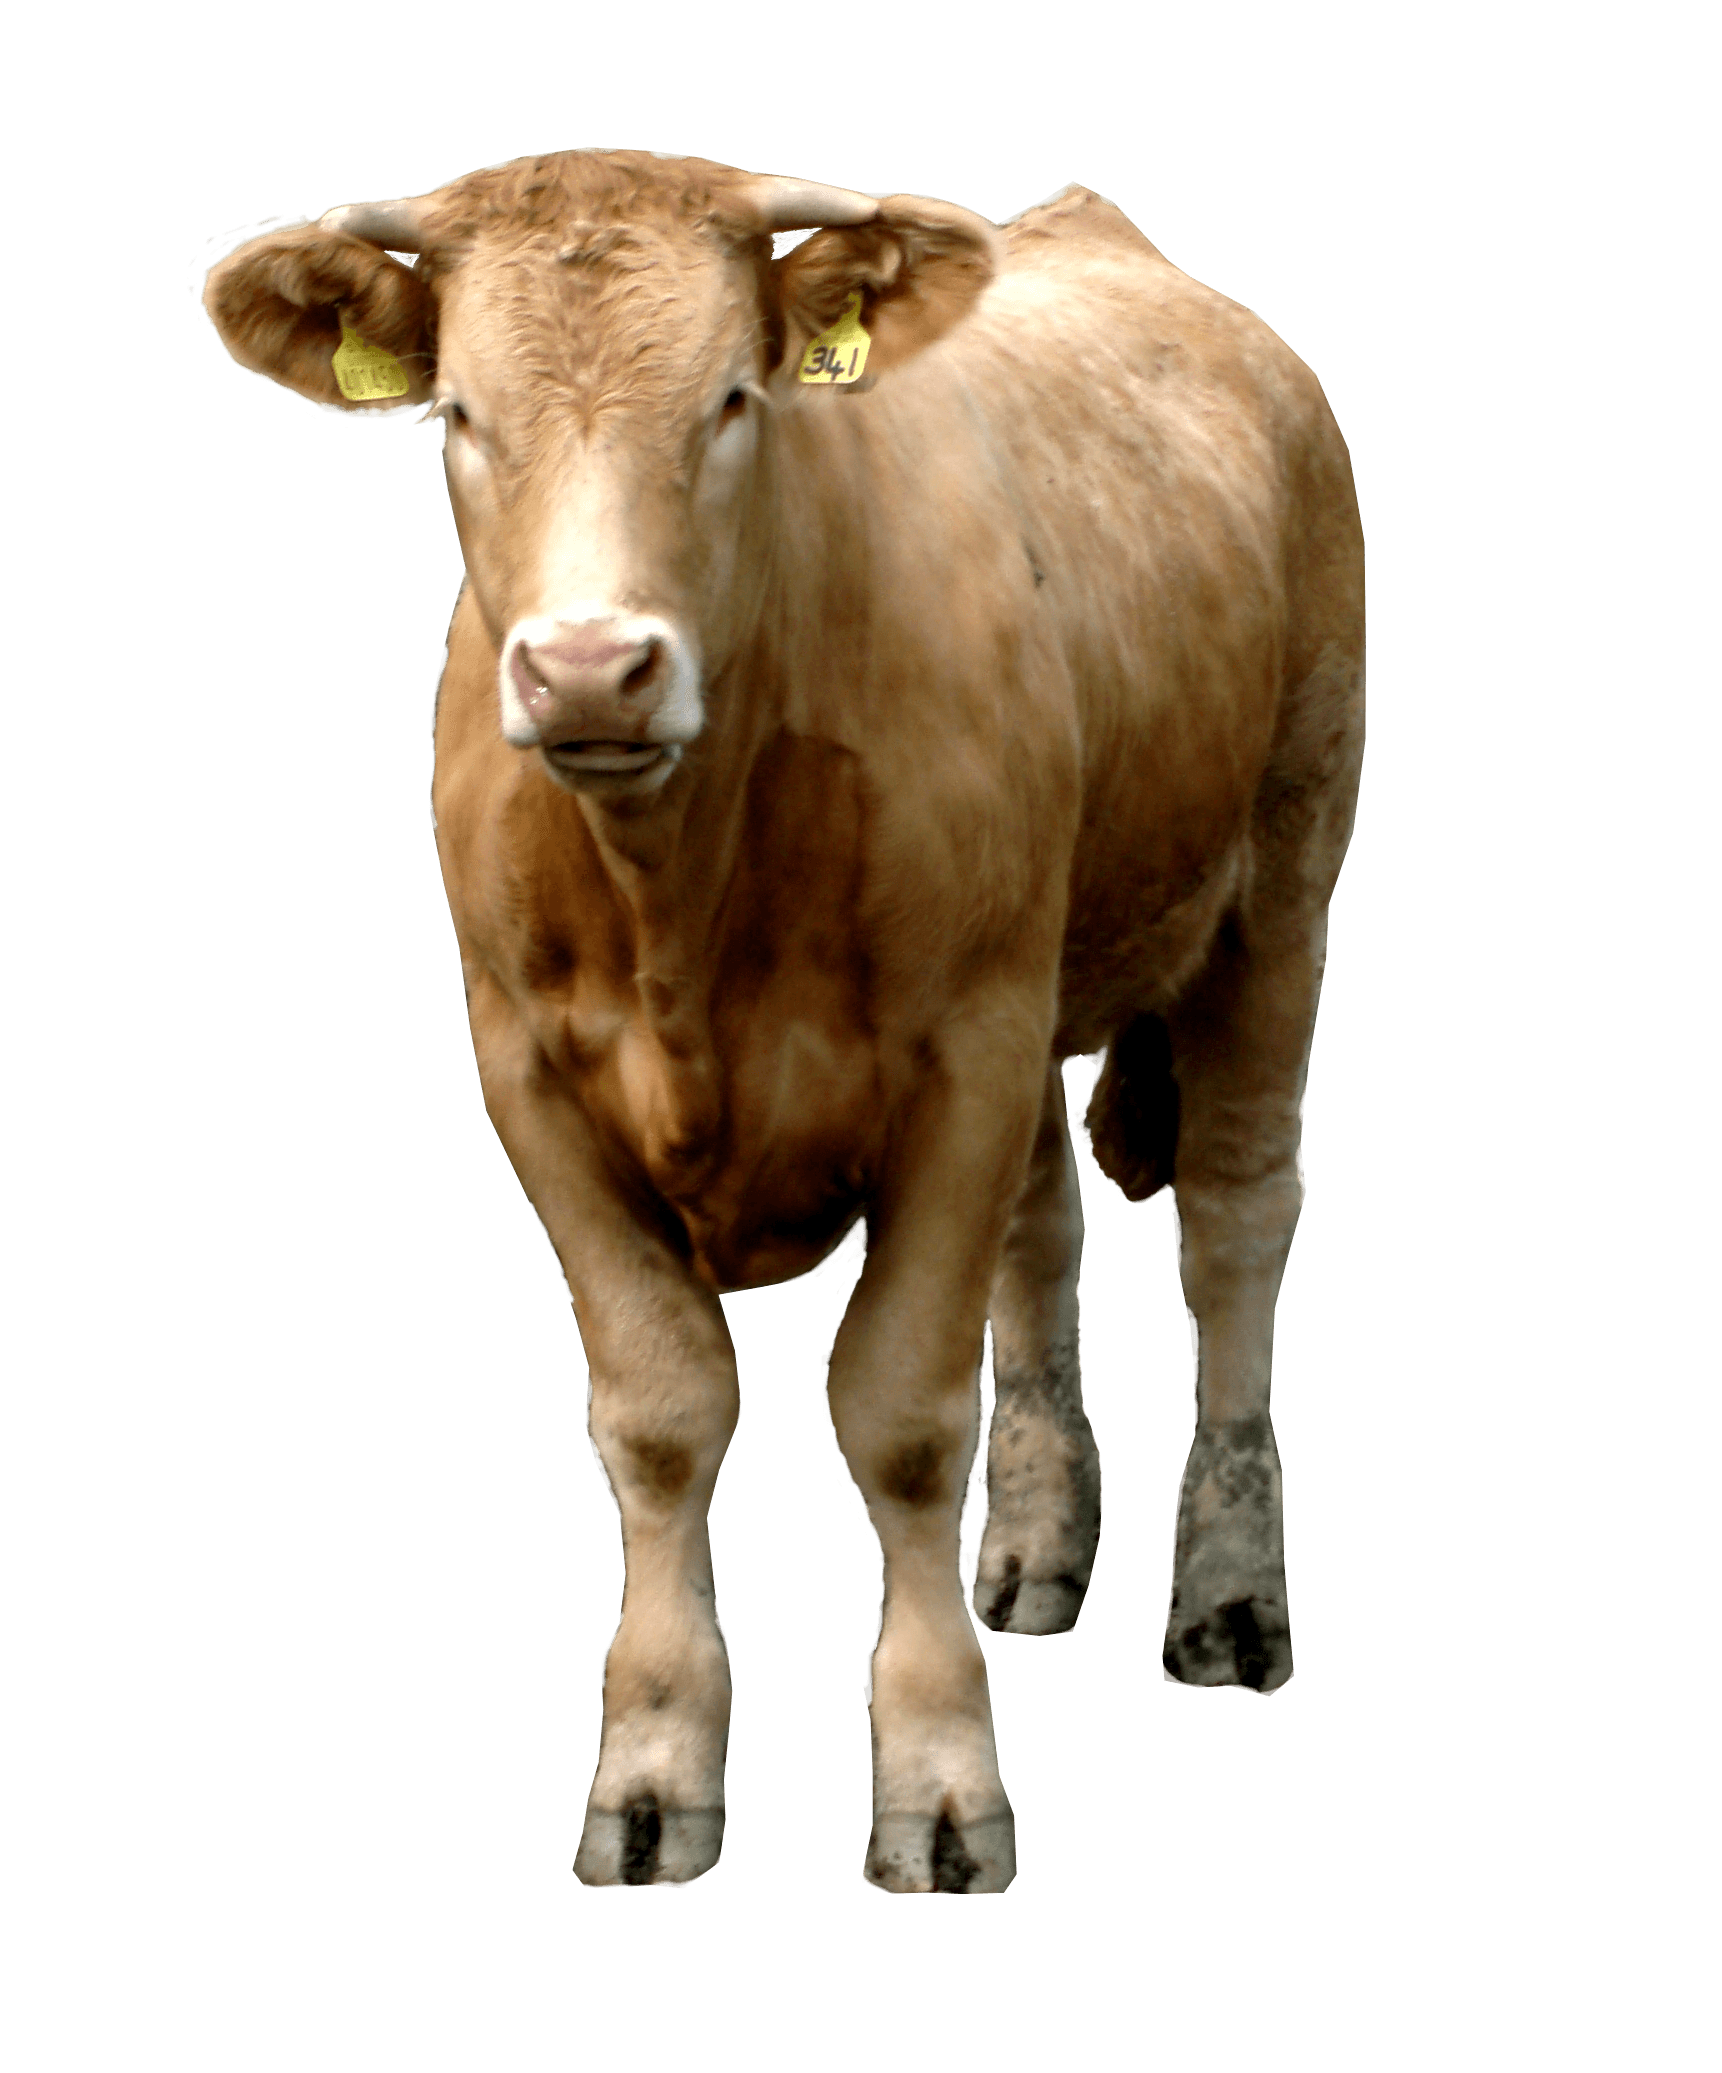 download brown cow png image png image pngimg #12889